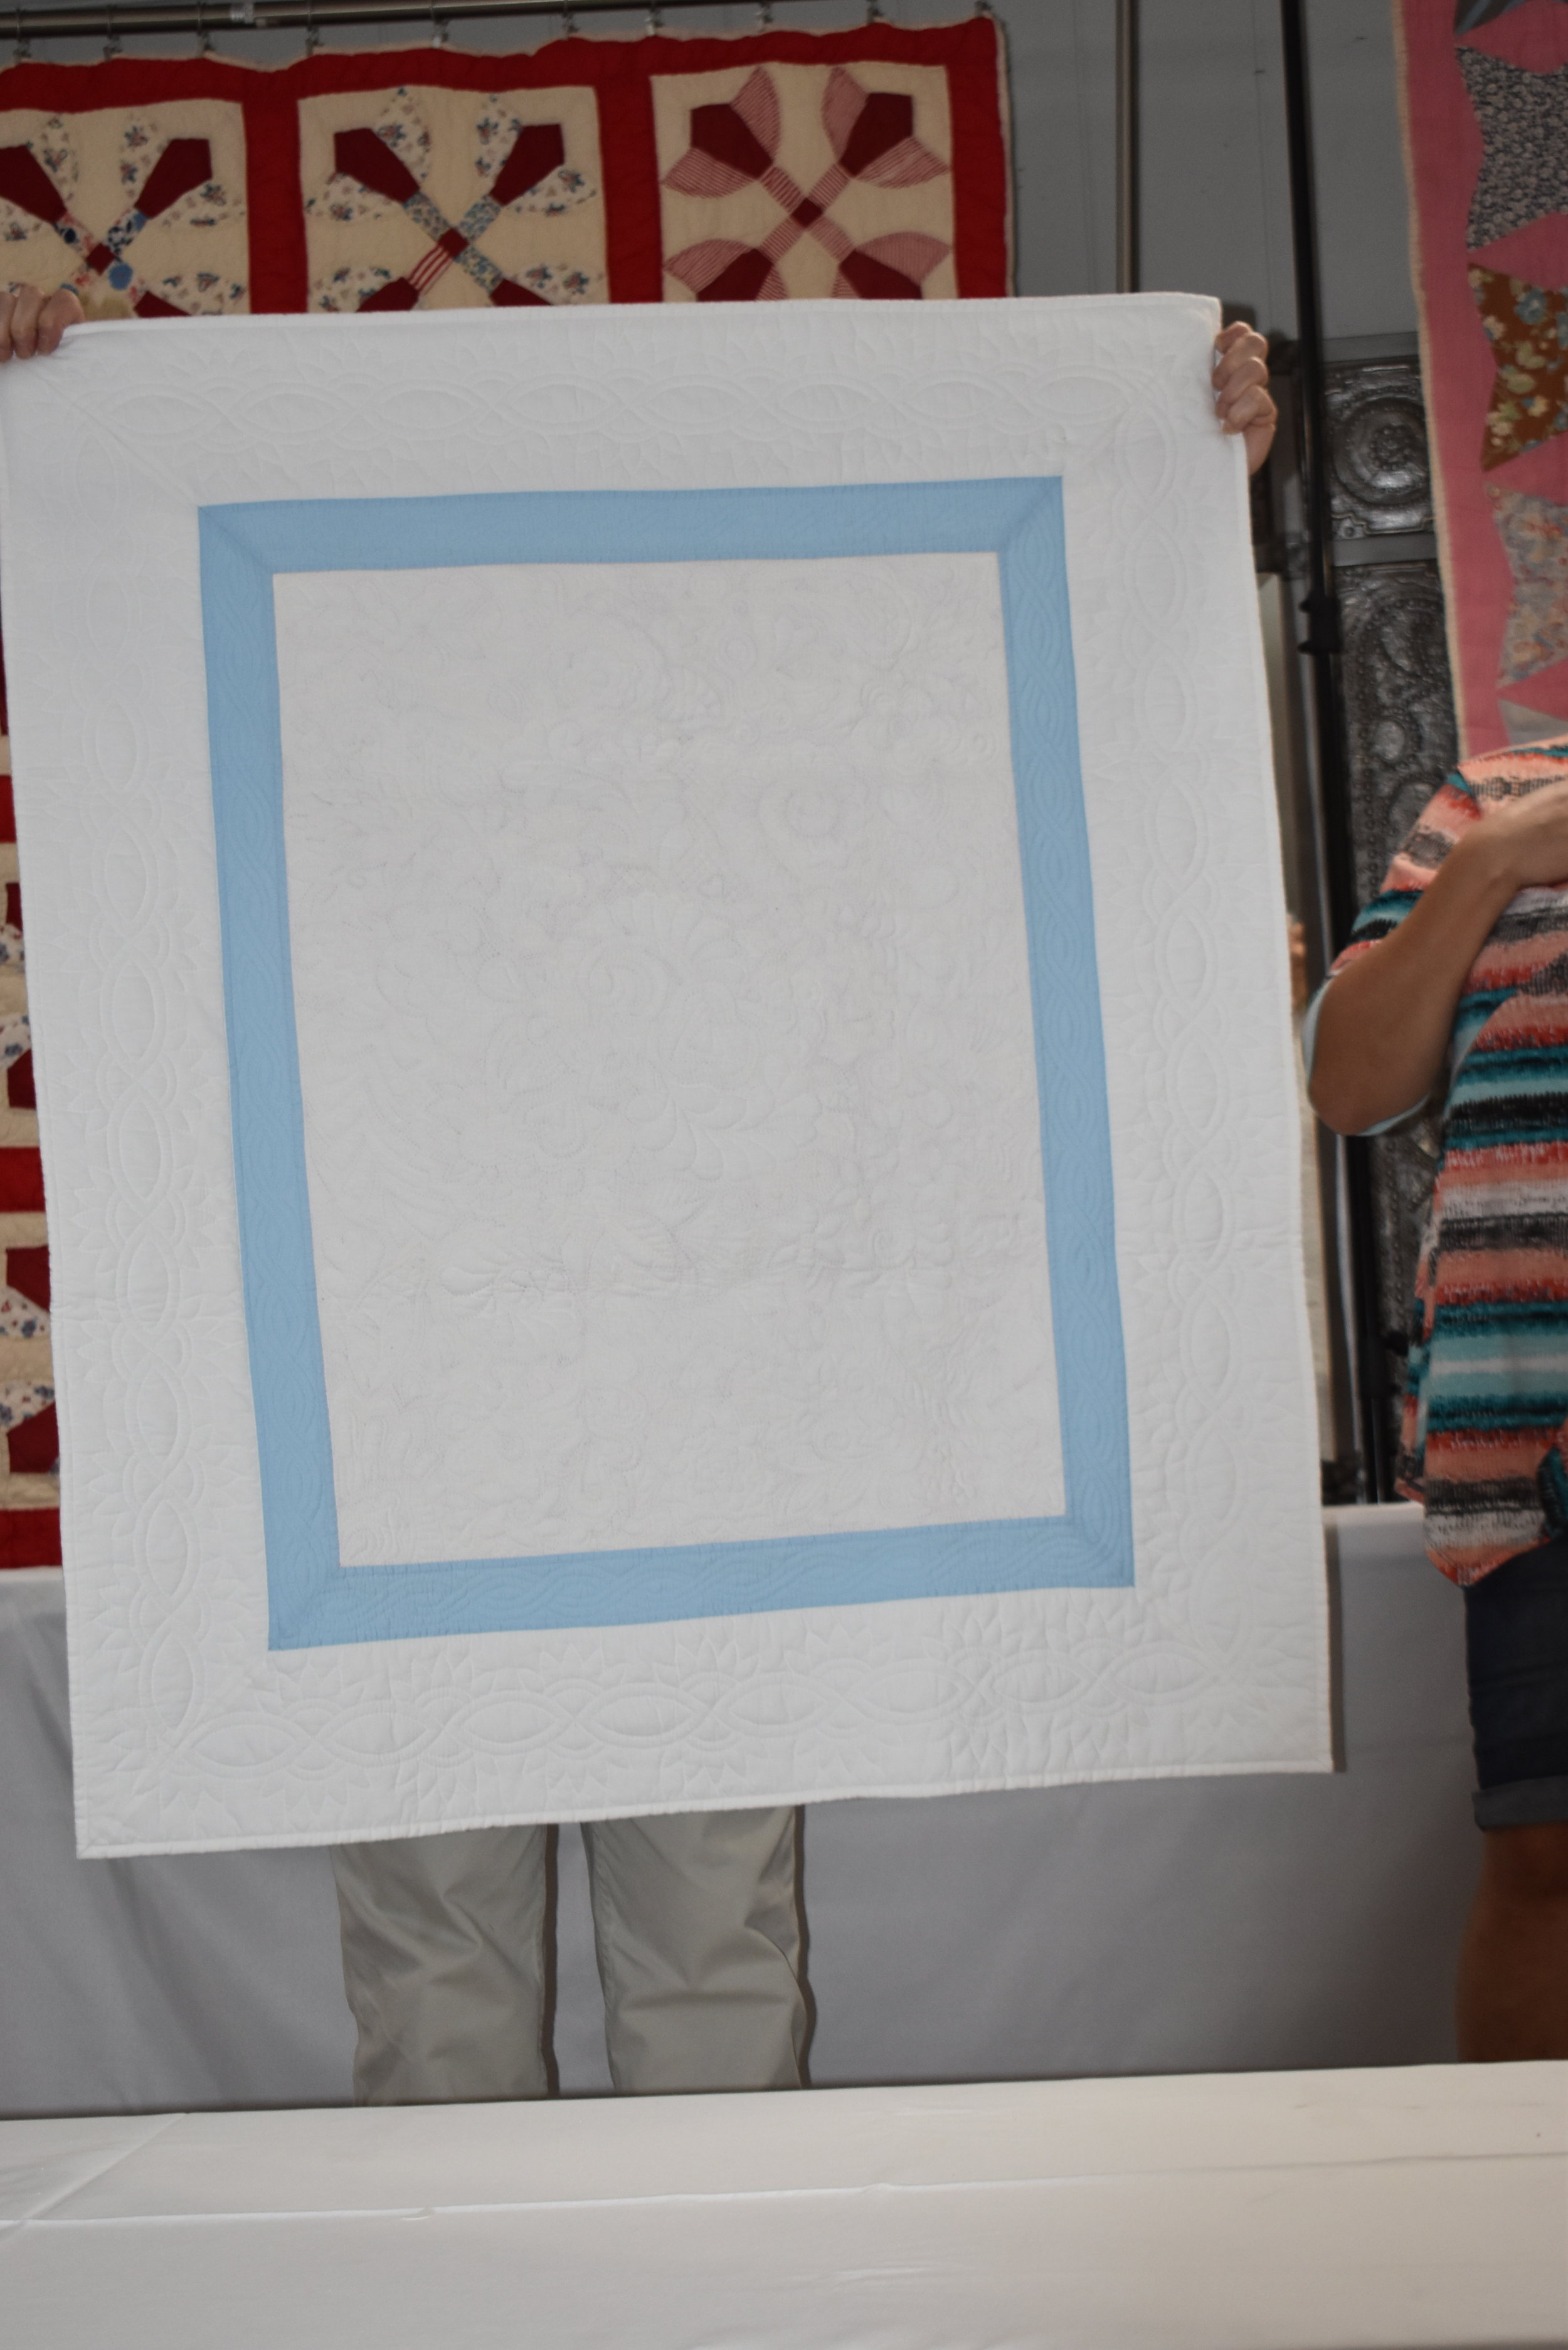 - Naomi also showed this hand quilted free motion baby quilt or wall hanging